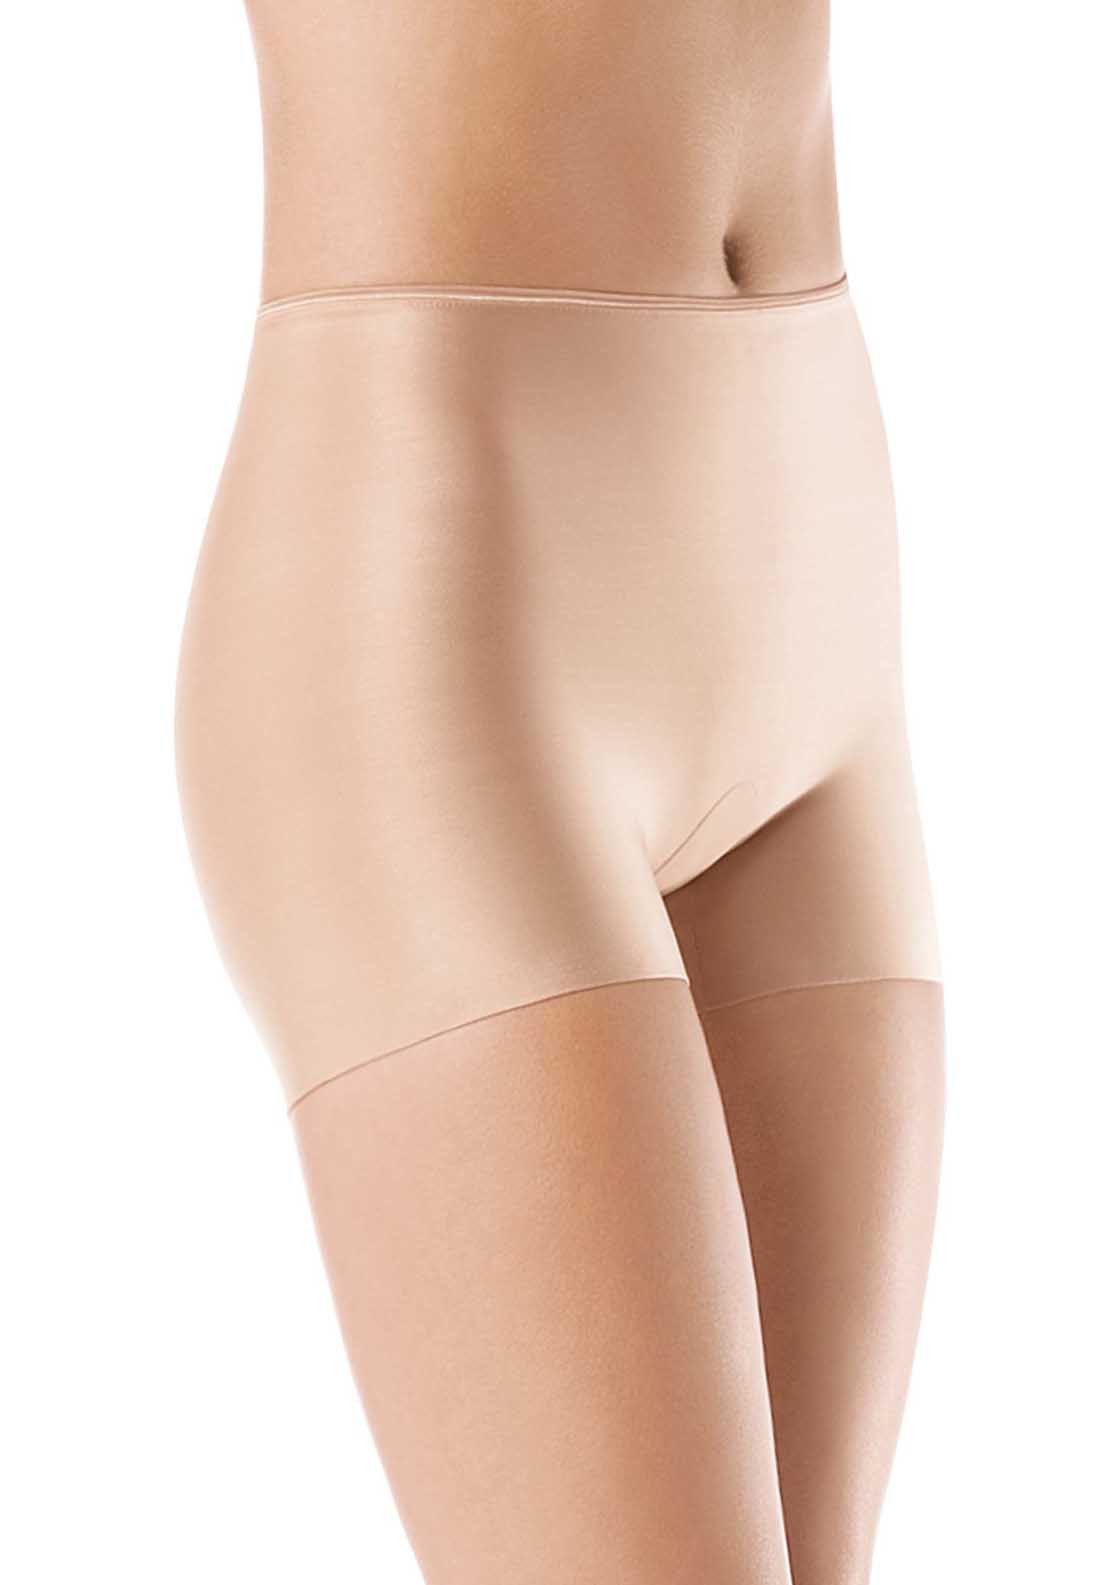 Spanx Slimplicity Girl Short, Nude